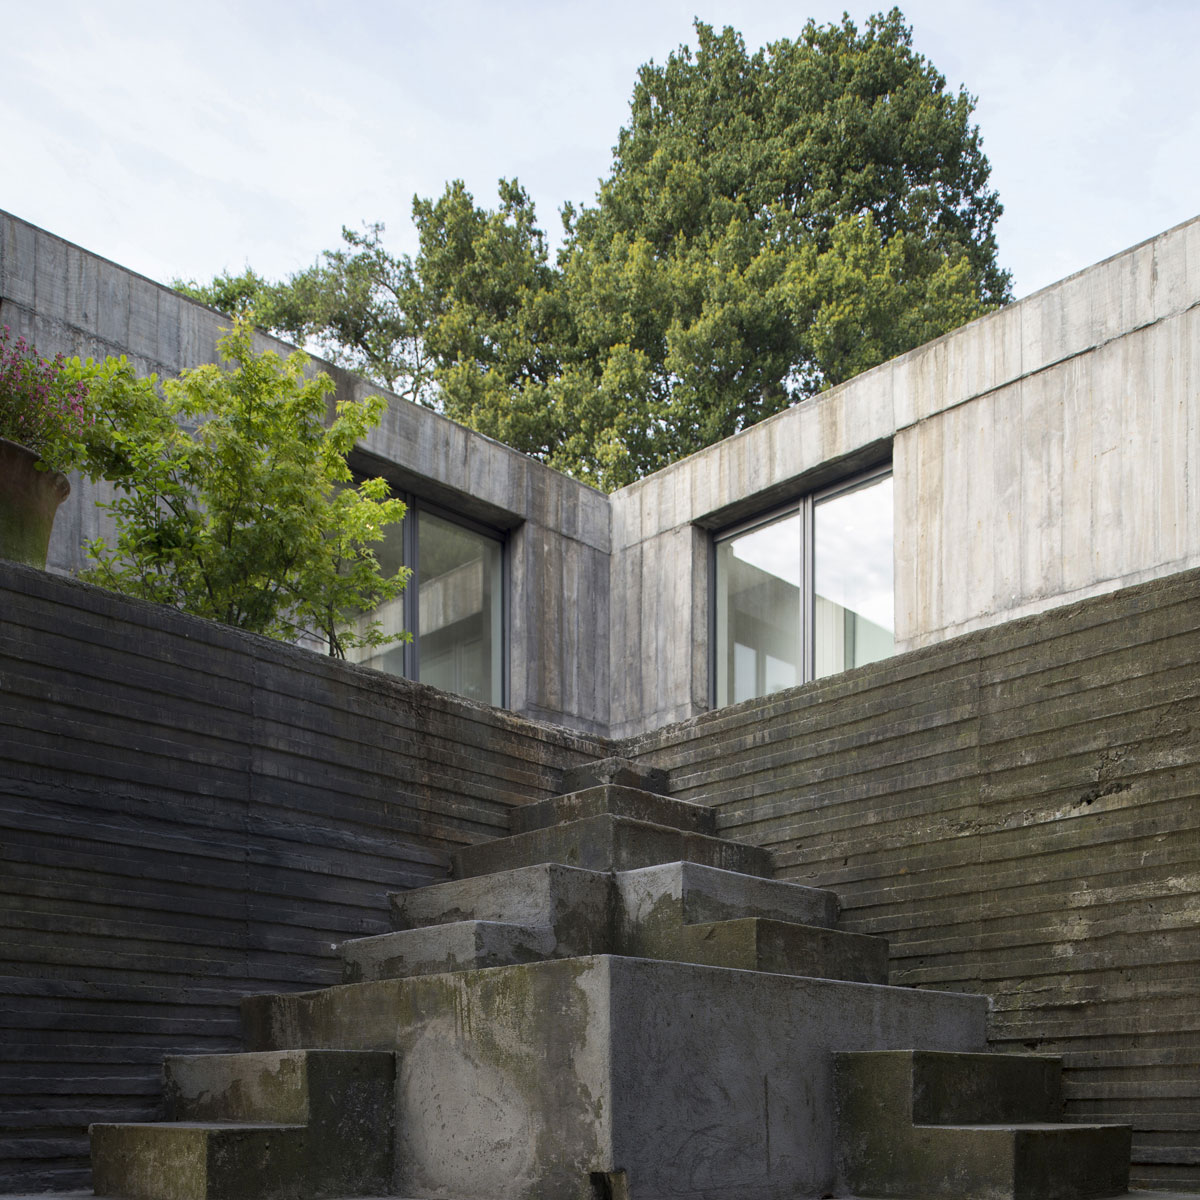 Guna House Located Between a Steeply Sloping Hillside and a Wood of Eucalyptus Trees by Pezo von Ellrichshausen-04